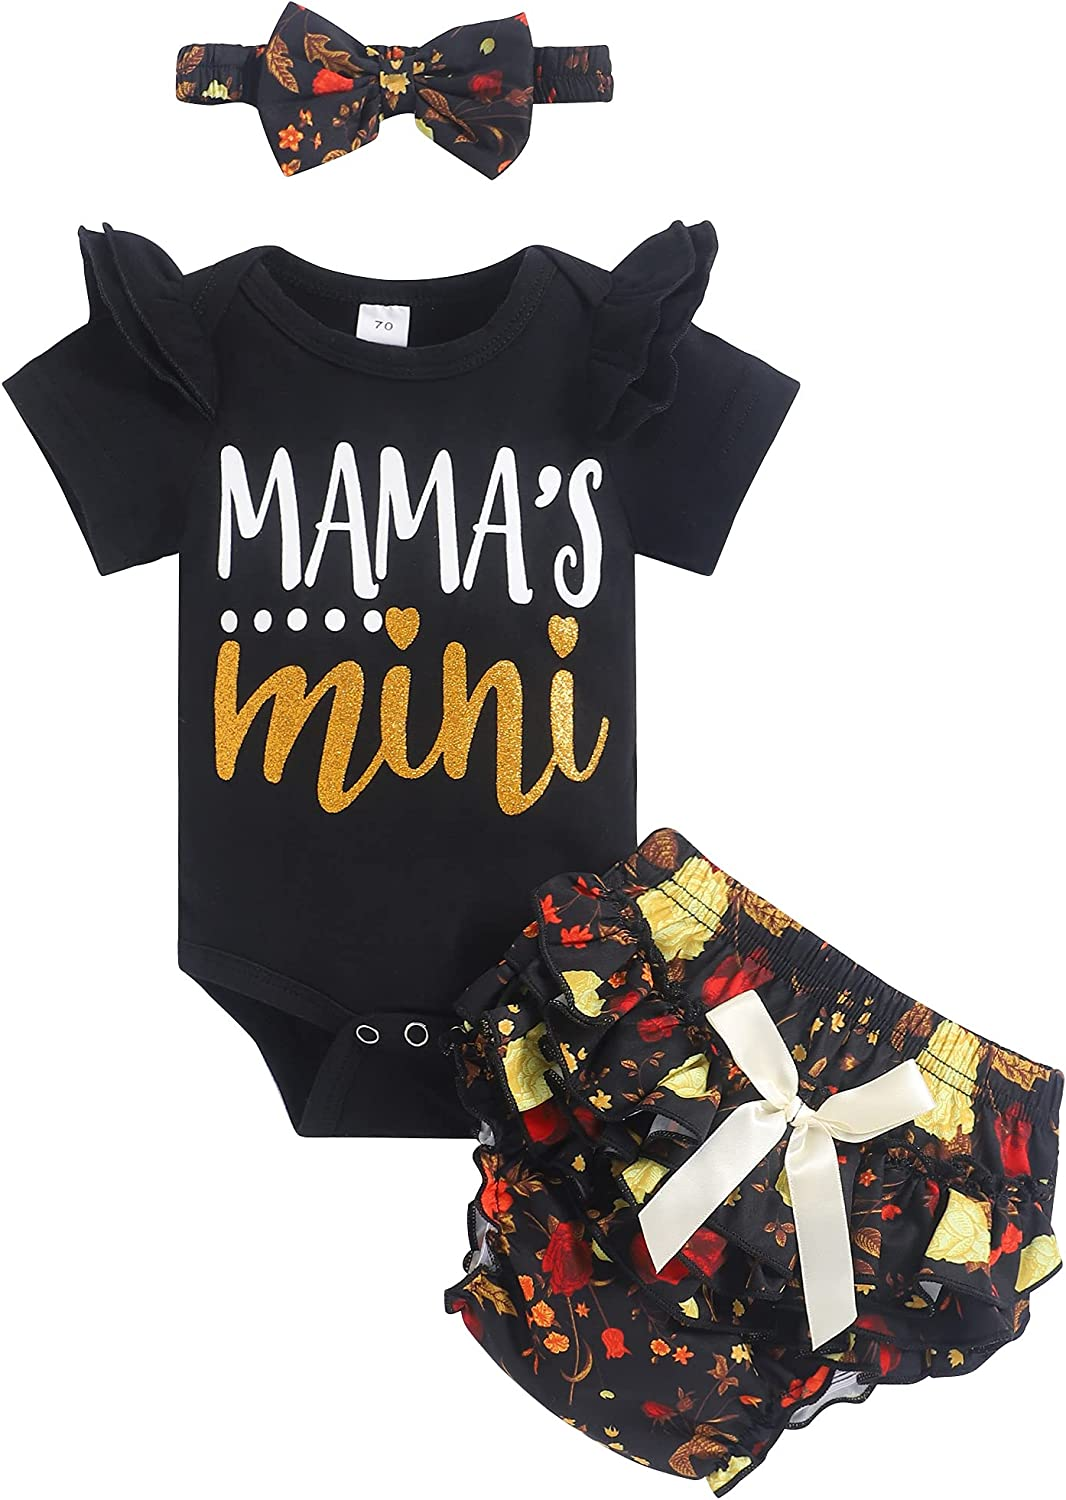 Newborn Baby Girl Clothes Infant Romper Floral Shorts Set Summer Outfits Cute Baby Clothes